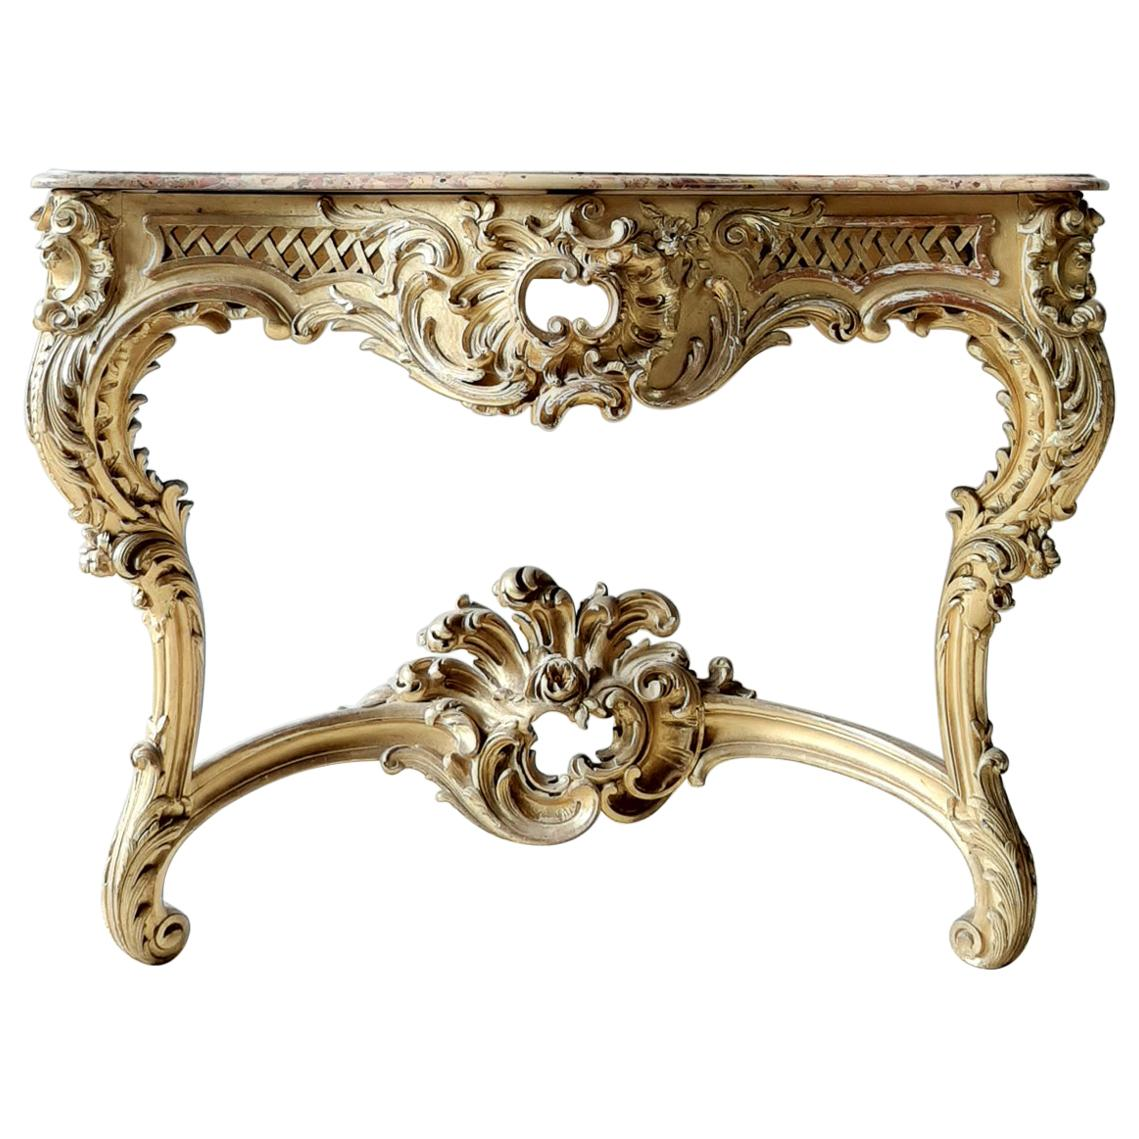 19th Century French Louis XV Style Carved Giltwood Console Table with Marble Top